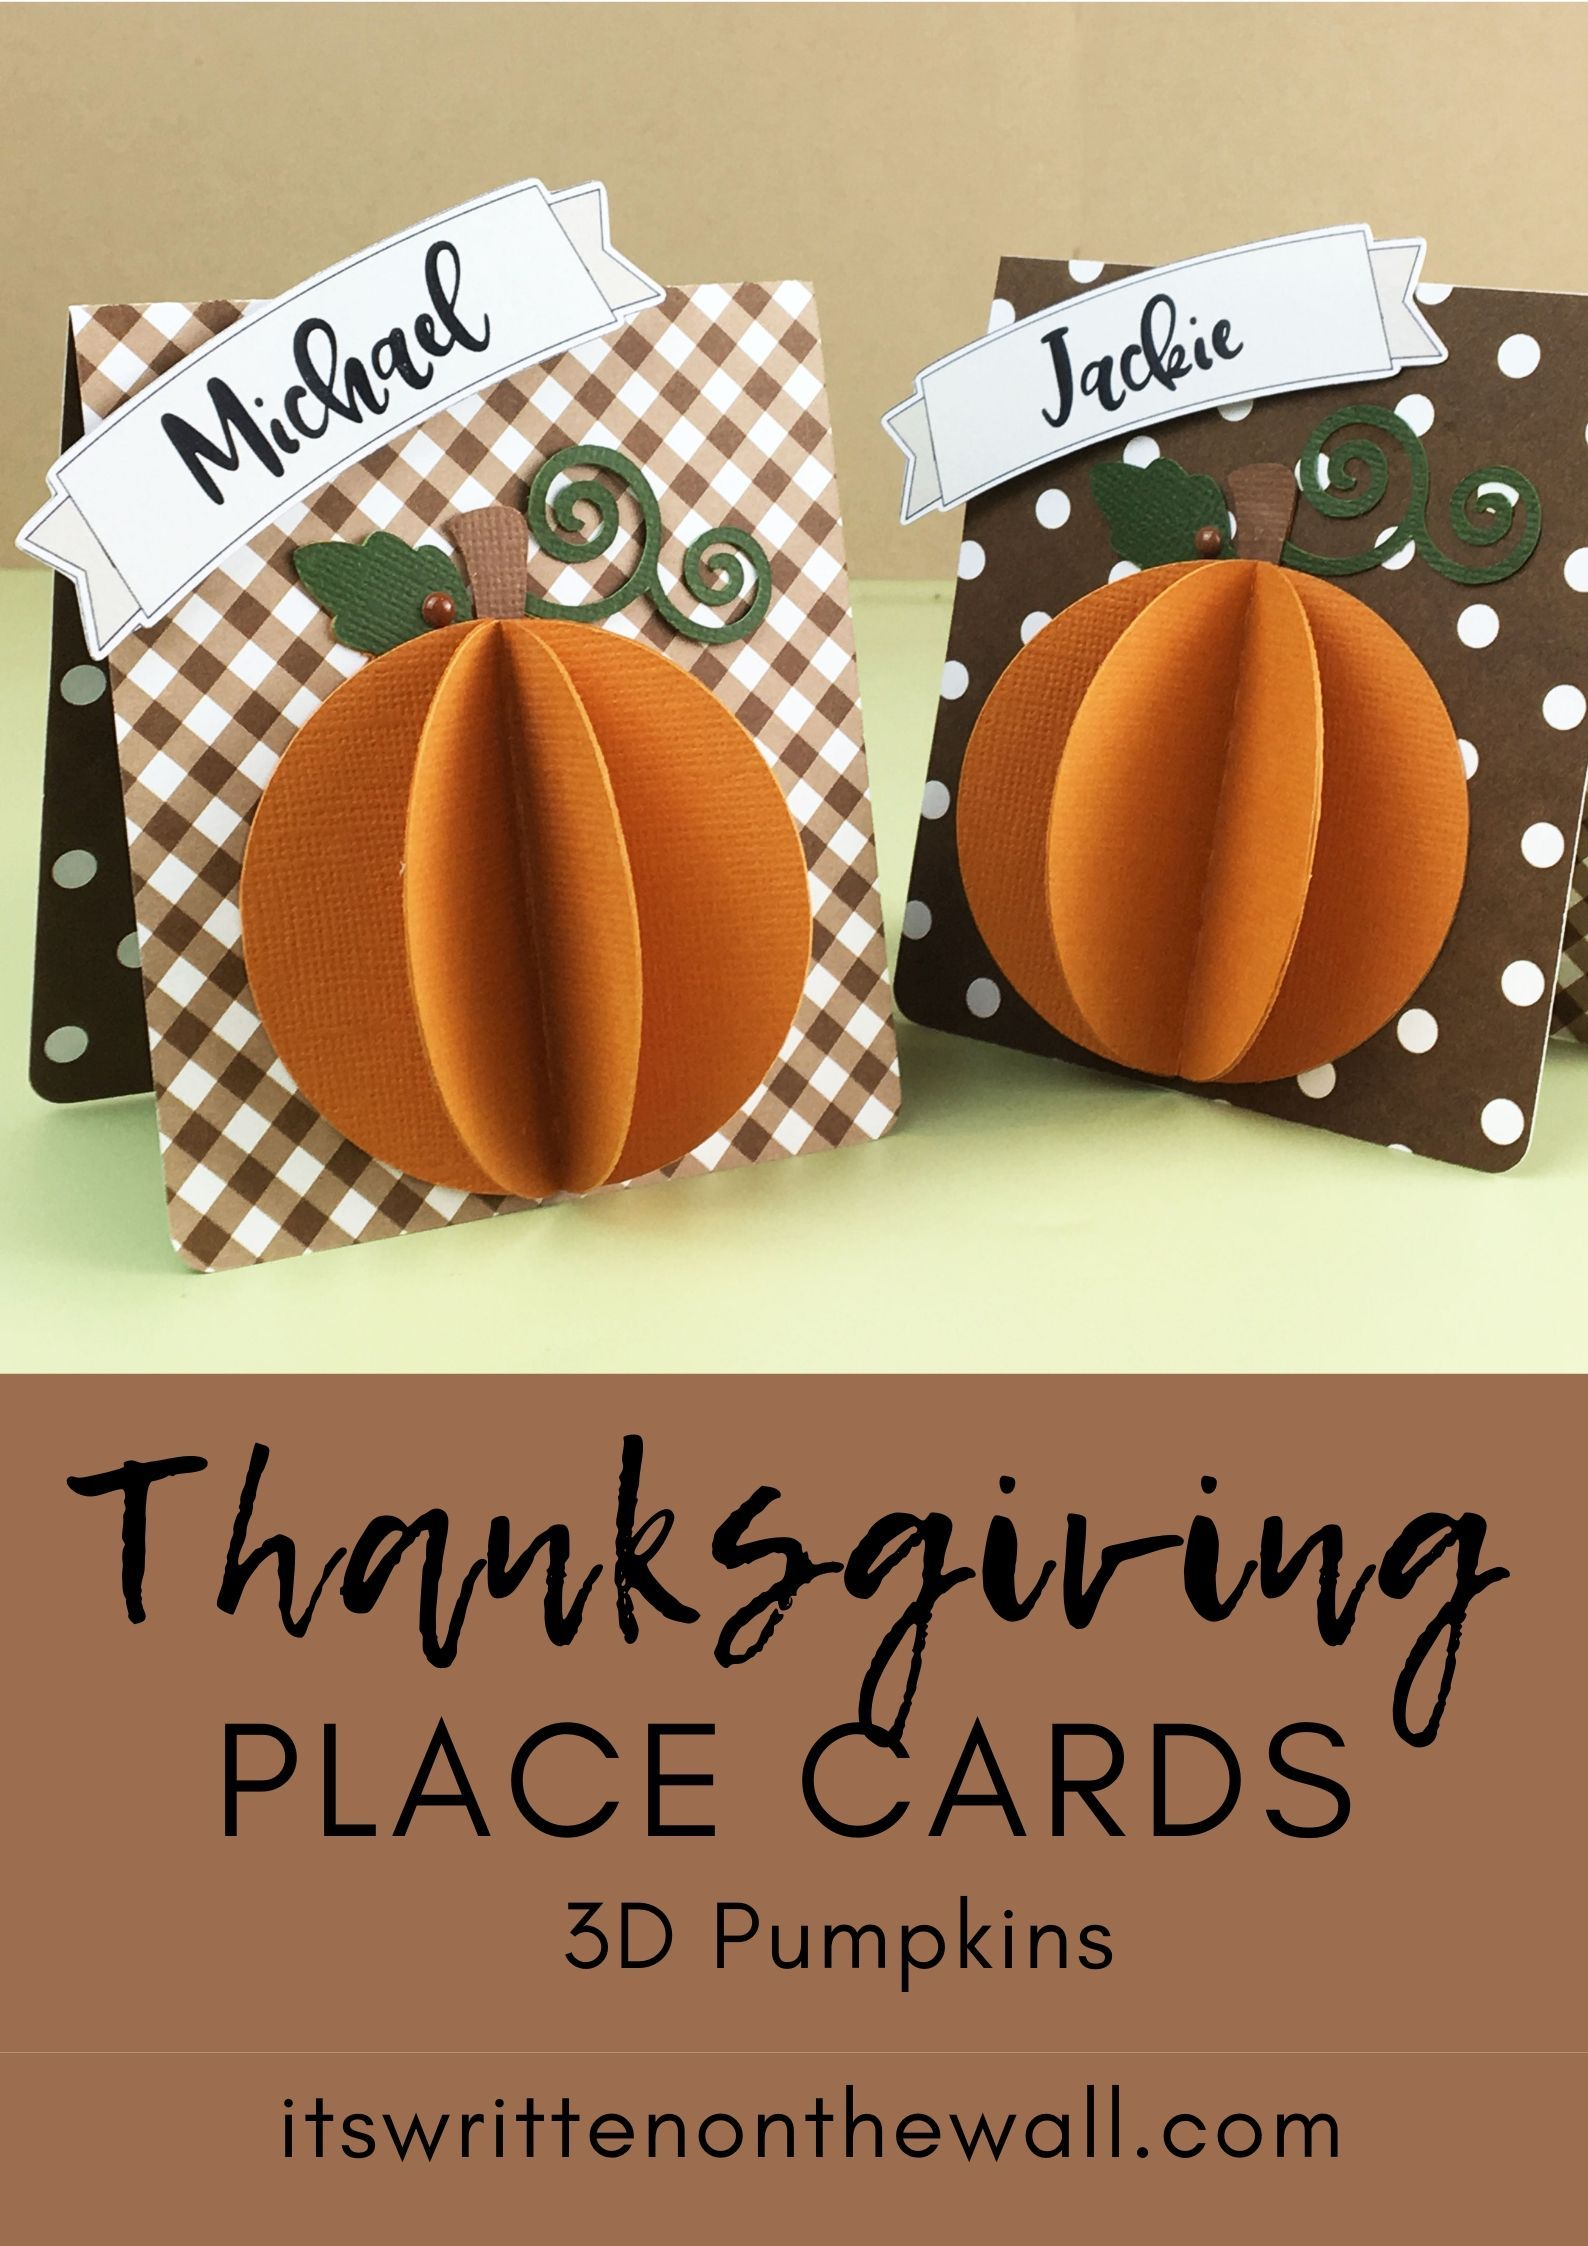 Thanksgiving Personalized Place Cards, 3D Pumpkins